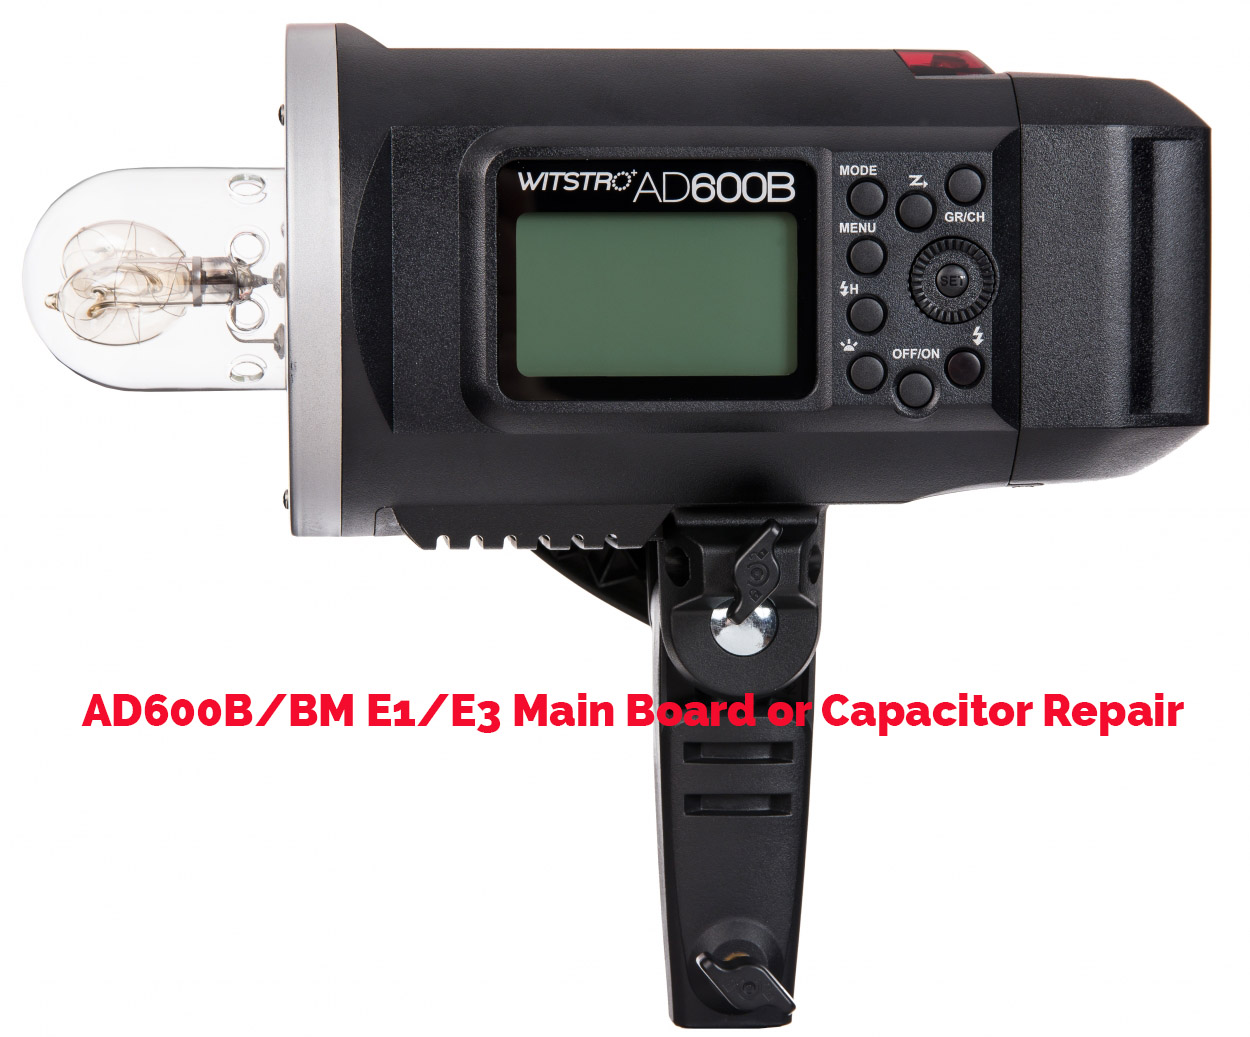 AD600B/BM E1/E3 Main Drive or Capacitor Repair